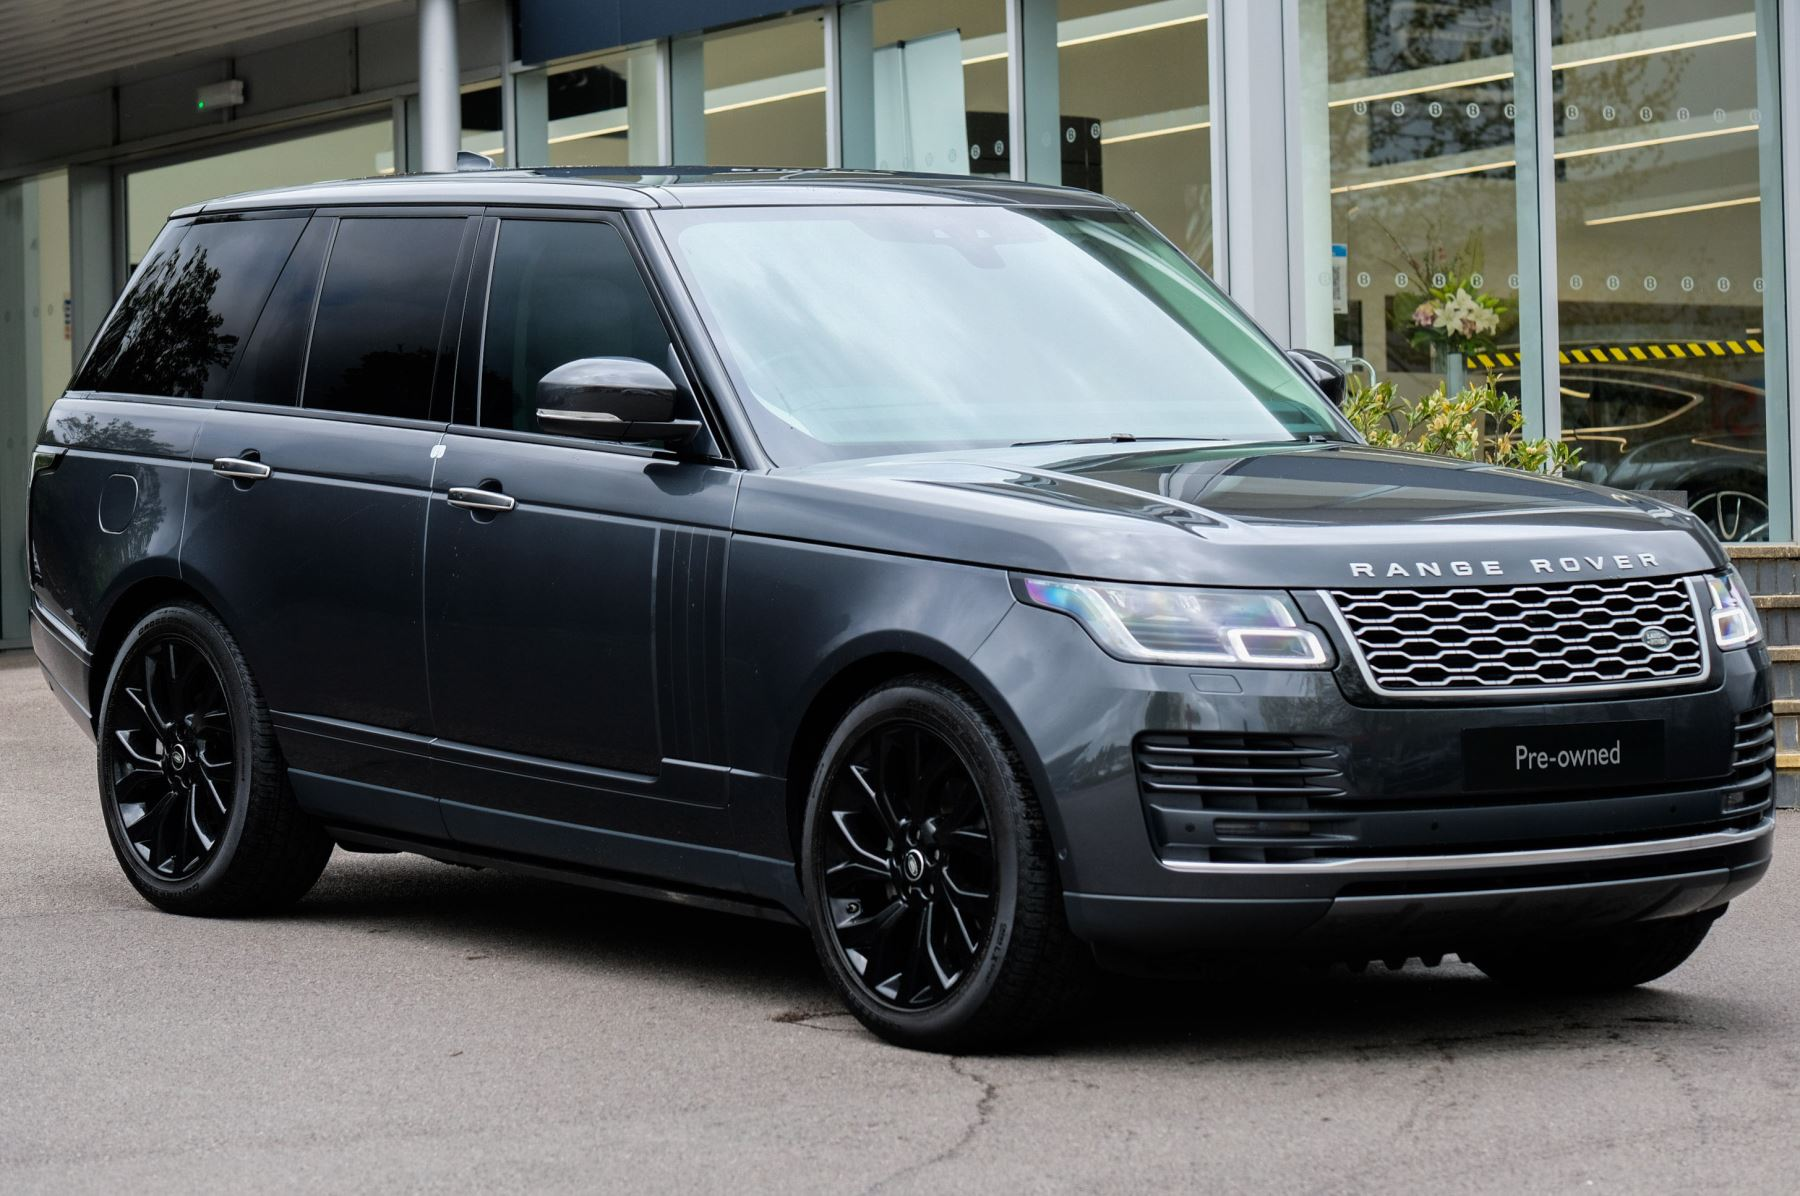 Land Rover Range Rover 3.0 SDV6 Vogue SE - Panoramic Roof - Privacy Glass - 21 inch Alloys Diesel Automatic 5 door Estate (2020) image